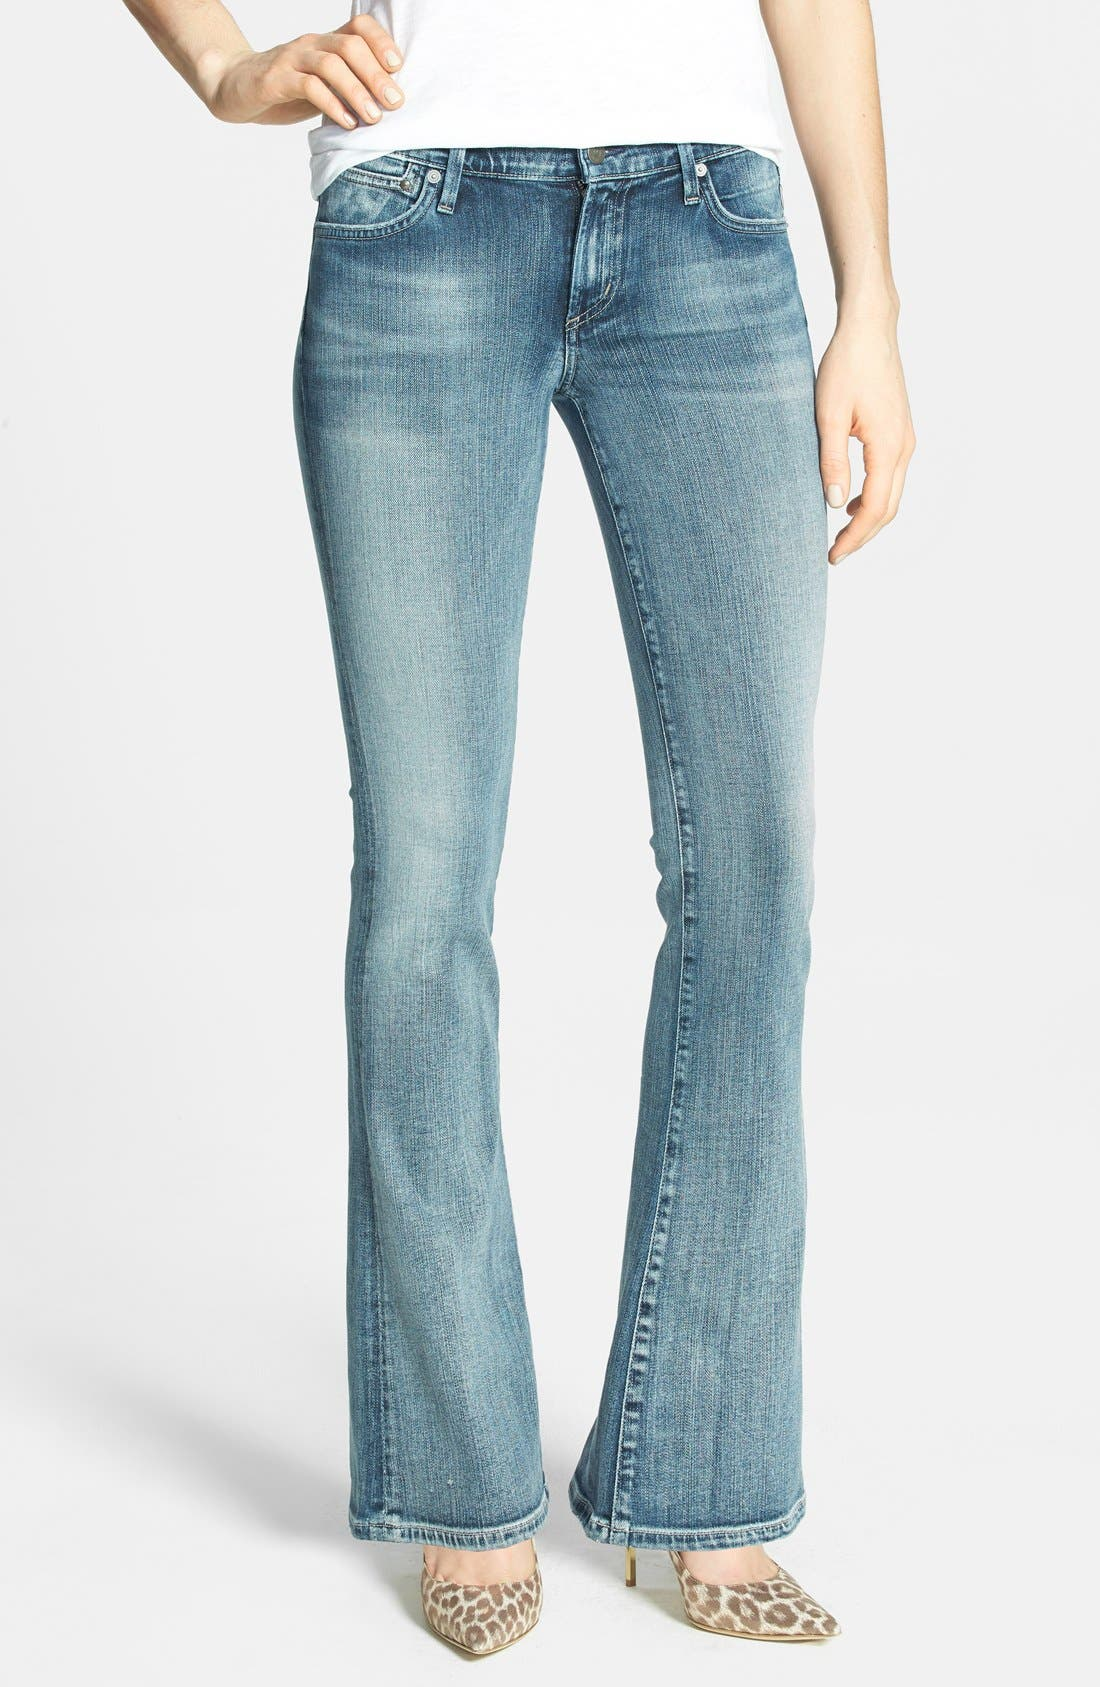 Main Image - Citizens of Humanity 'Emannuelle' Slim Bootcut Jeans (Gaze) (Petite)